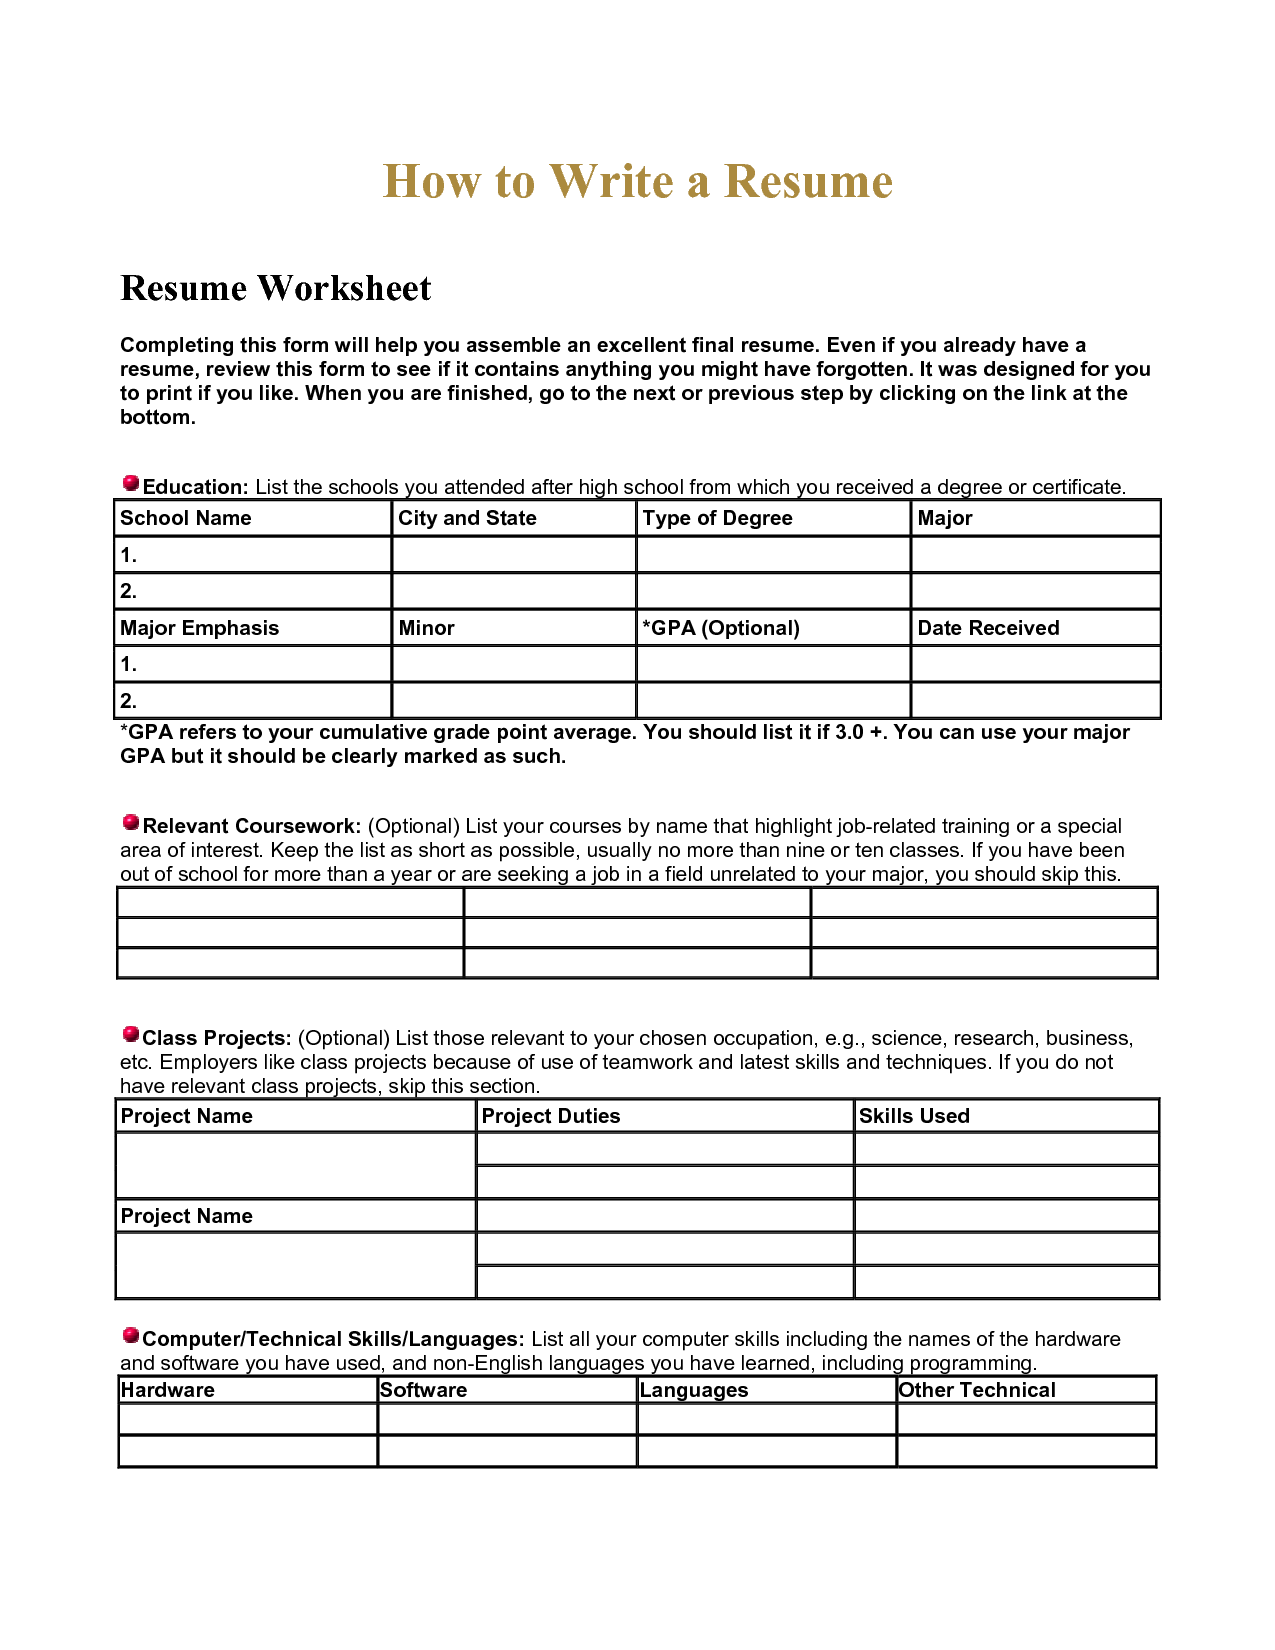 Uncategorized English Worksheets For High School high school resume worksheet using your academic experiences to build a resume